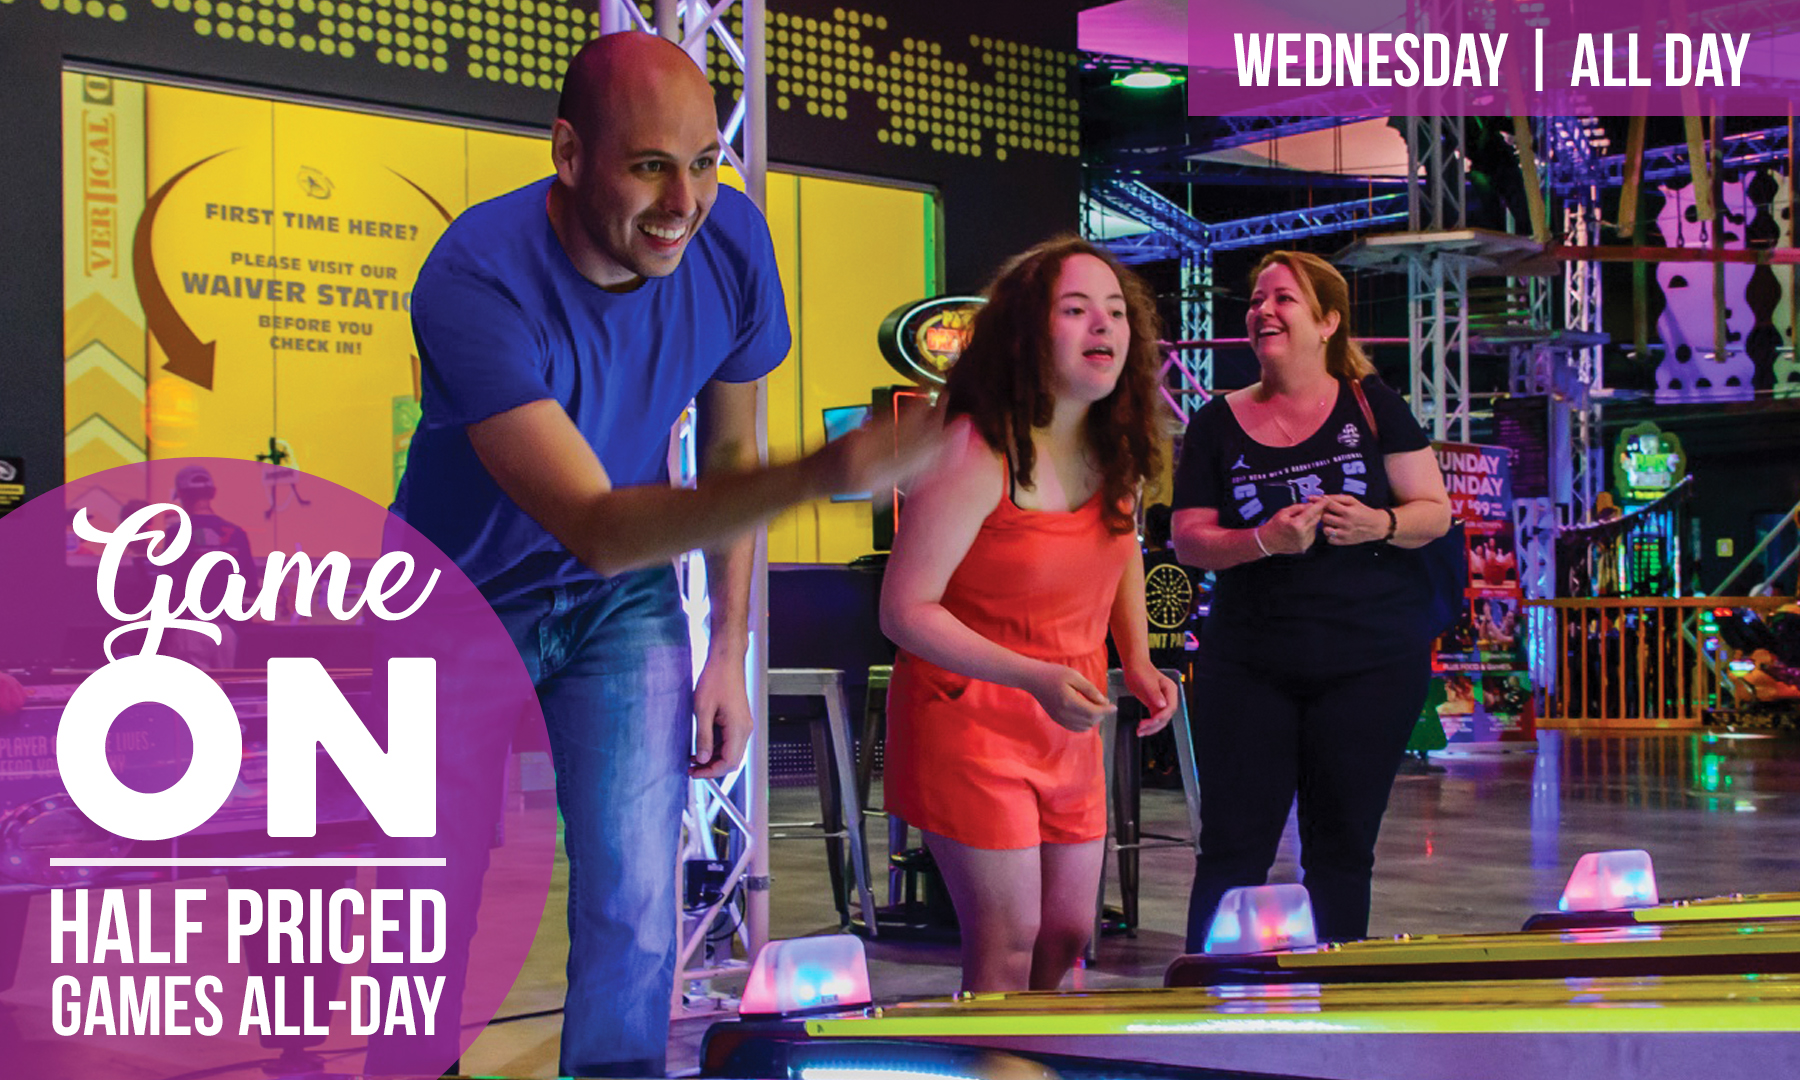 Game One Wednesdays at Xtreme Action Park